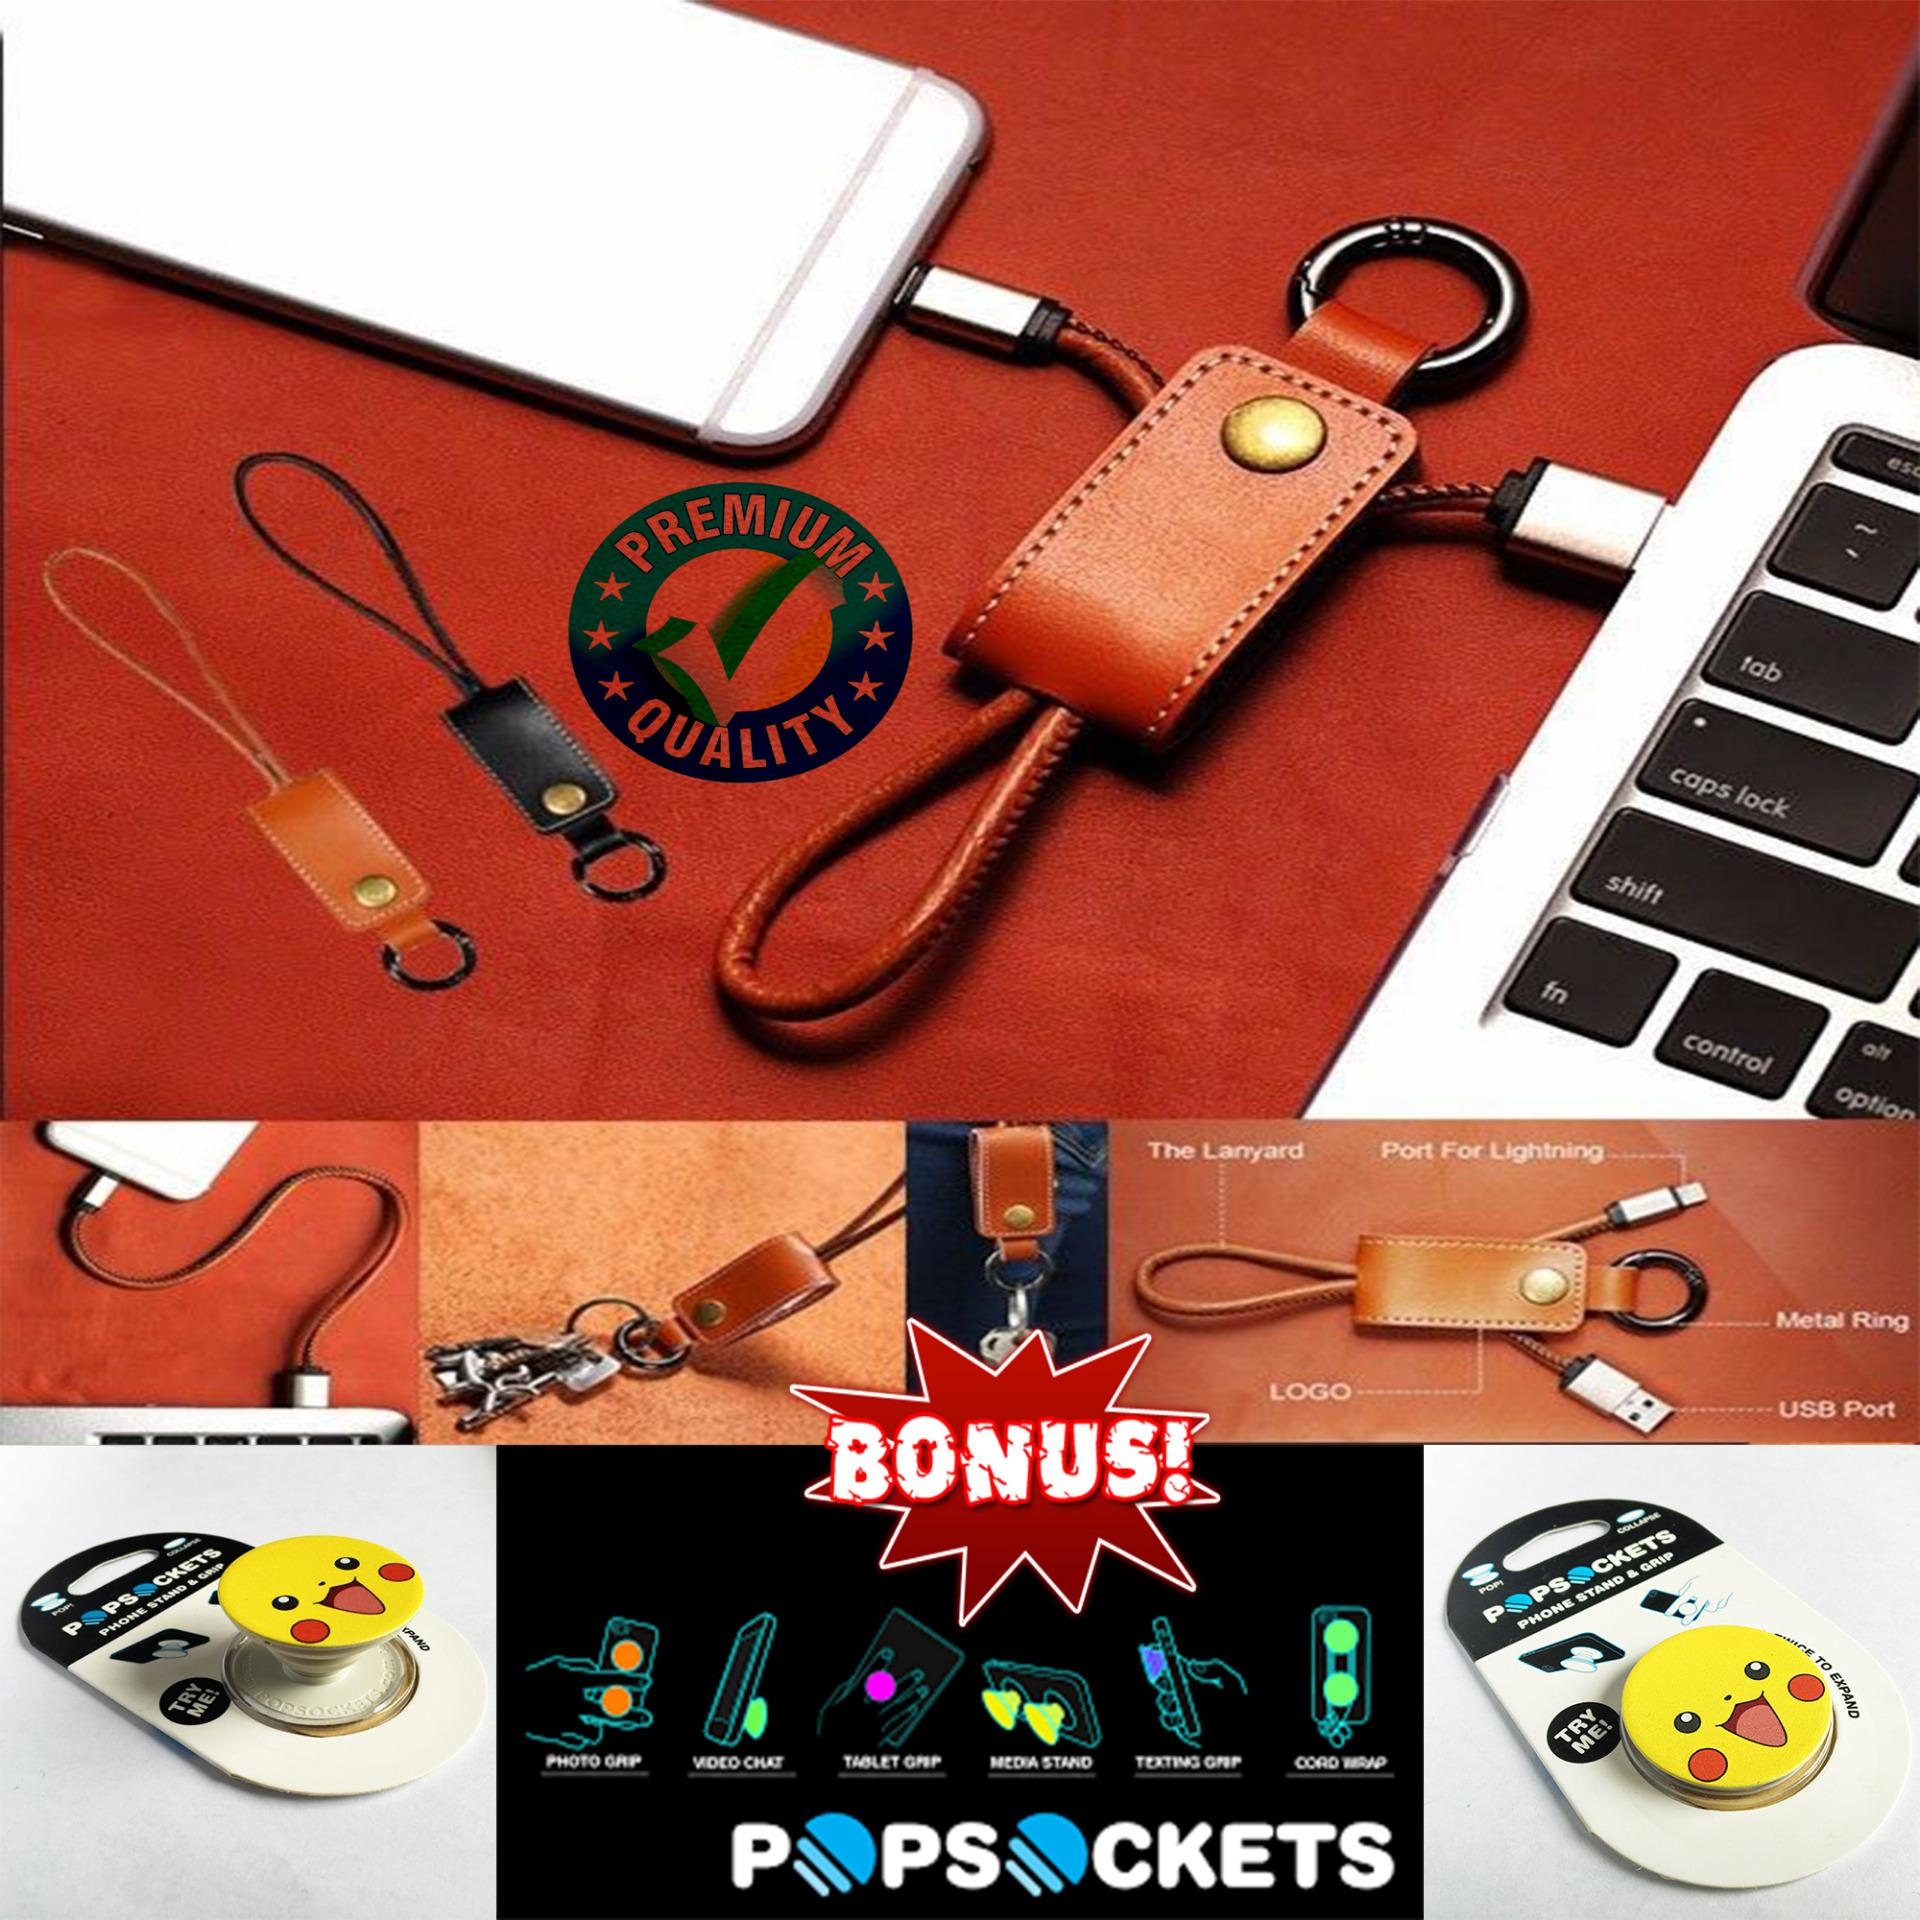 Trend's Kabel Data Micro Usb / Kabel Charger / Gantungan Kunci / Key Chain Leather Usb Data Charger Cable - Hitam + Gratis Pop Socket / Stand Grip Smartphone